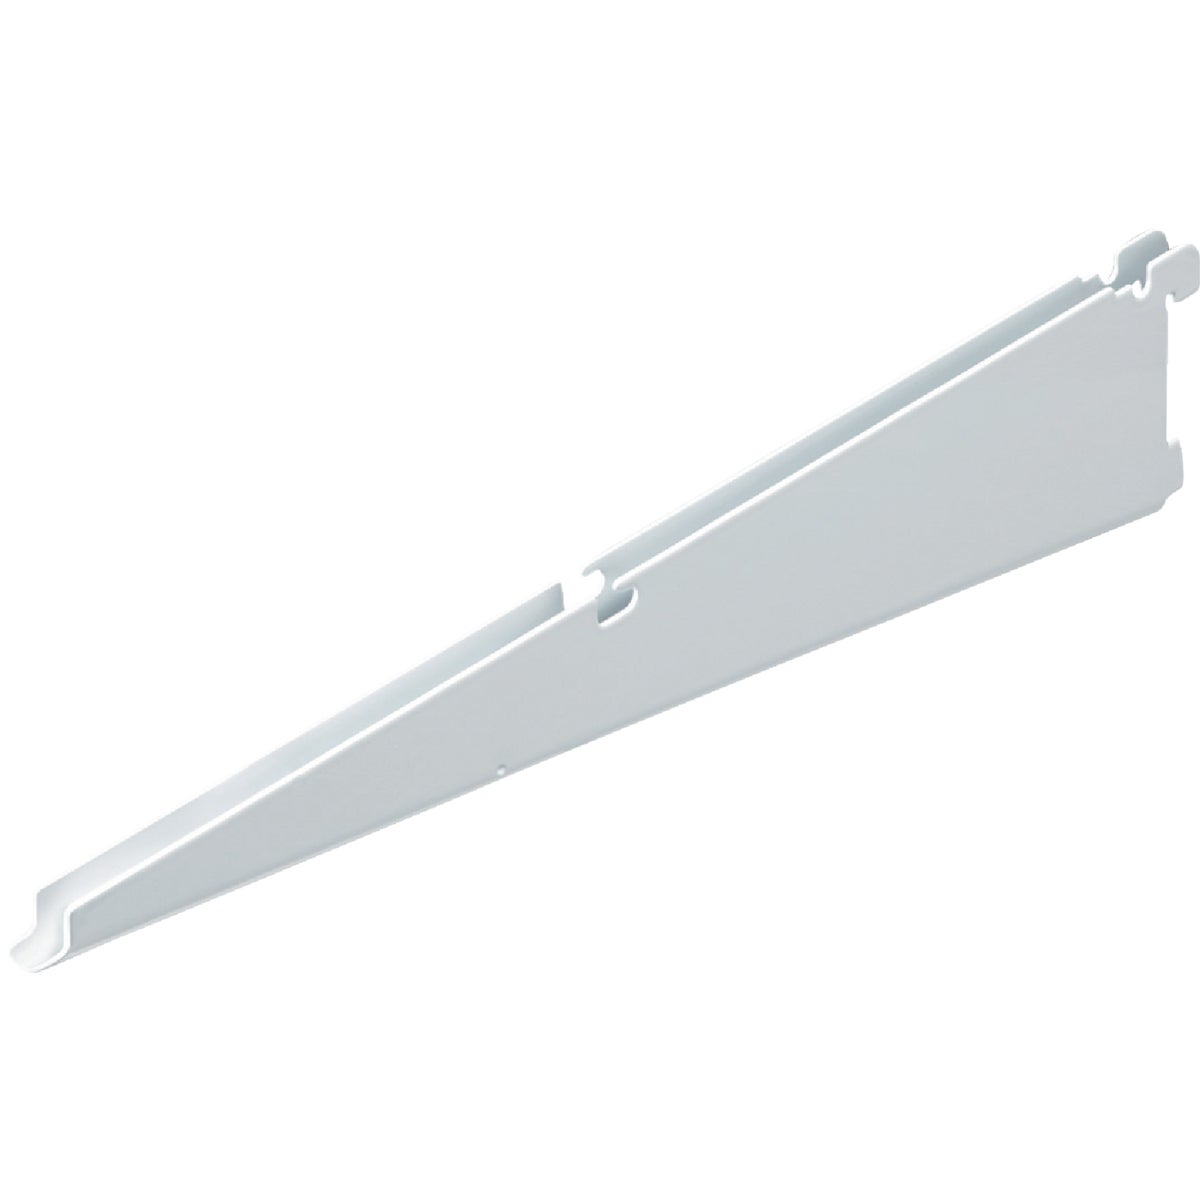 "12"" SHELF BRACKET - 7913141211 by Schulte Corp"